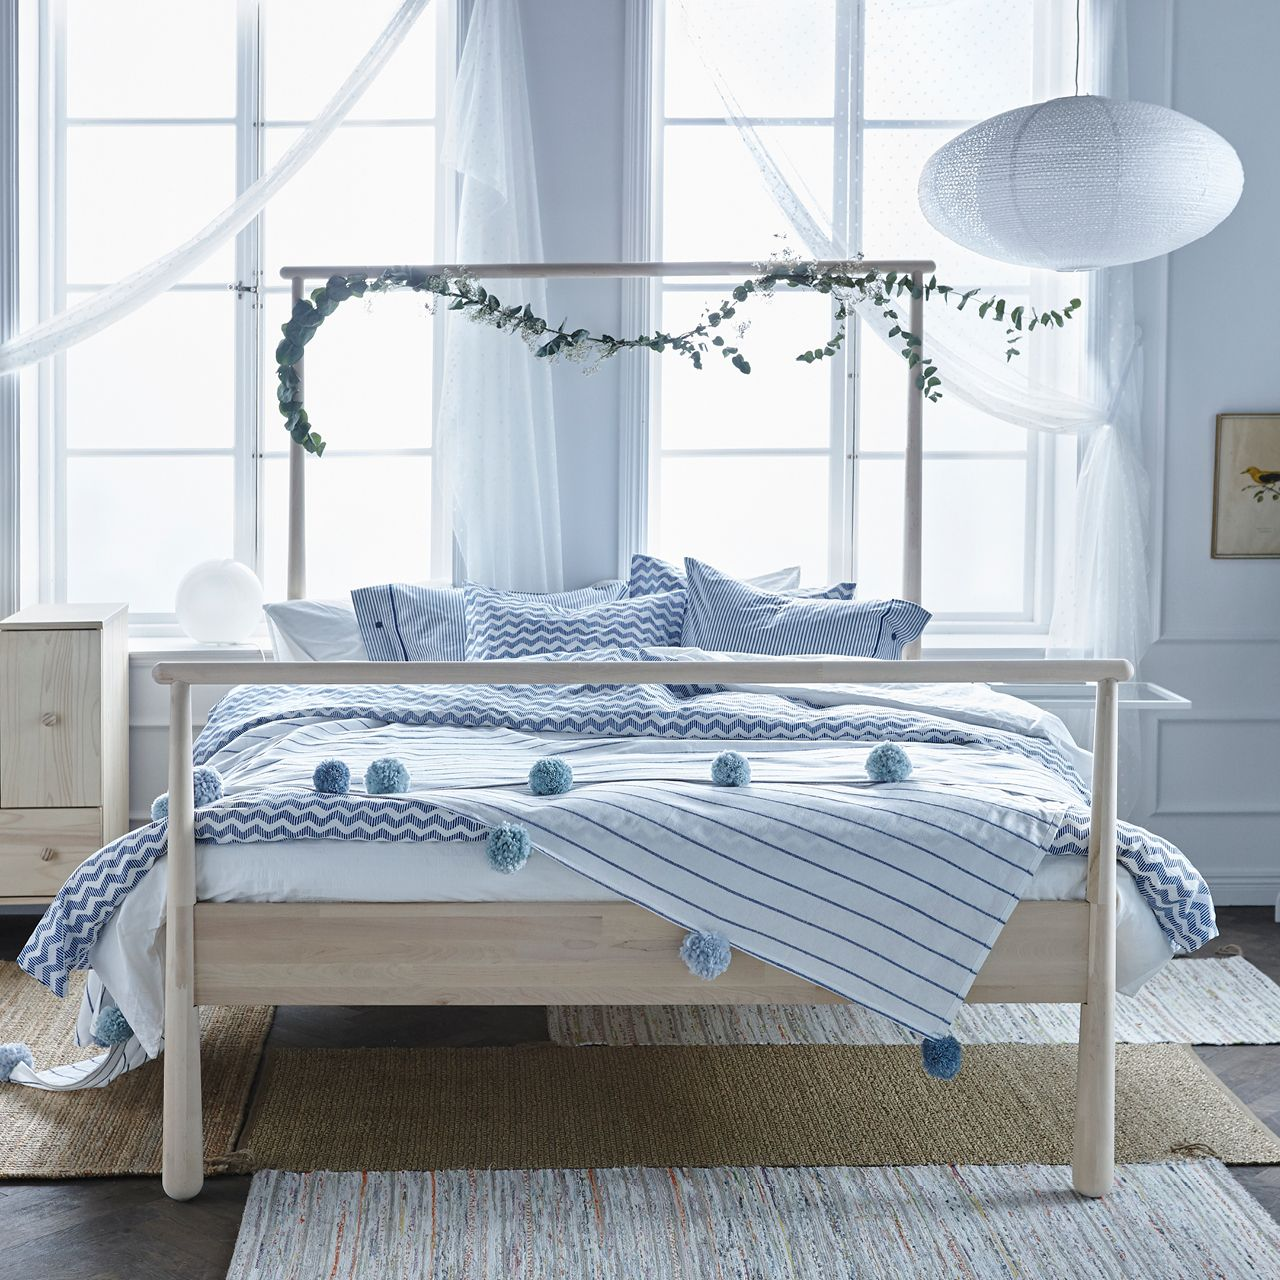 GJÖRA Bed frame birch, Lönset Queen Bedroom styles